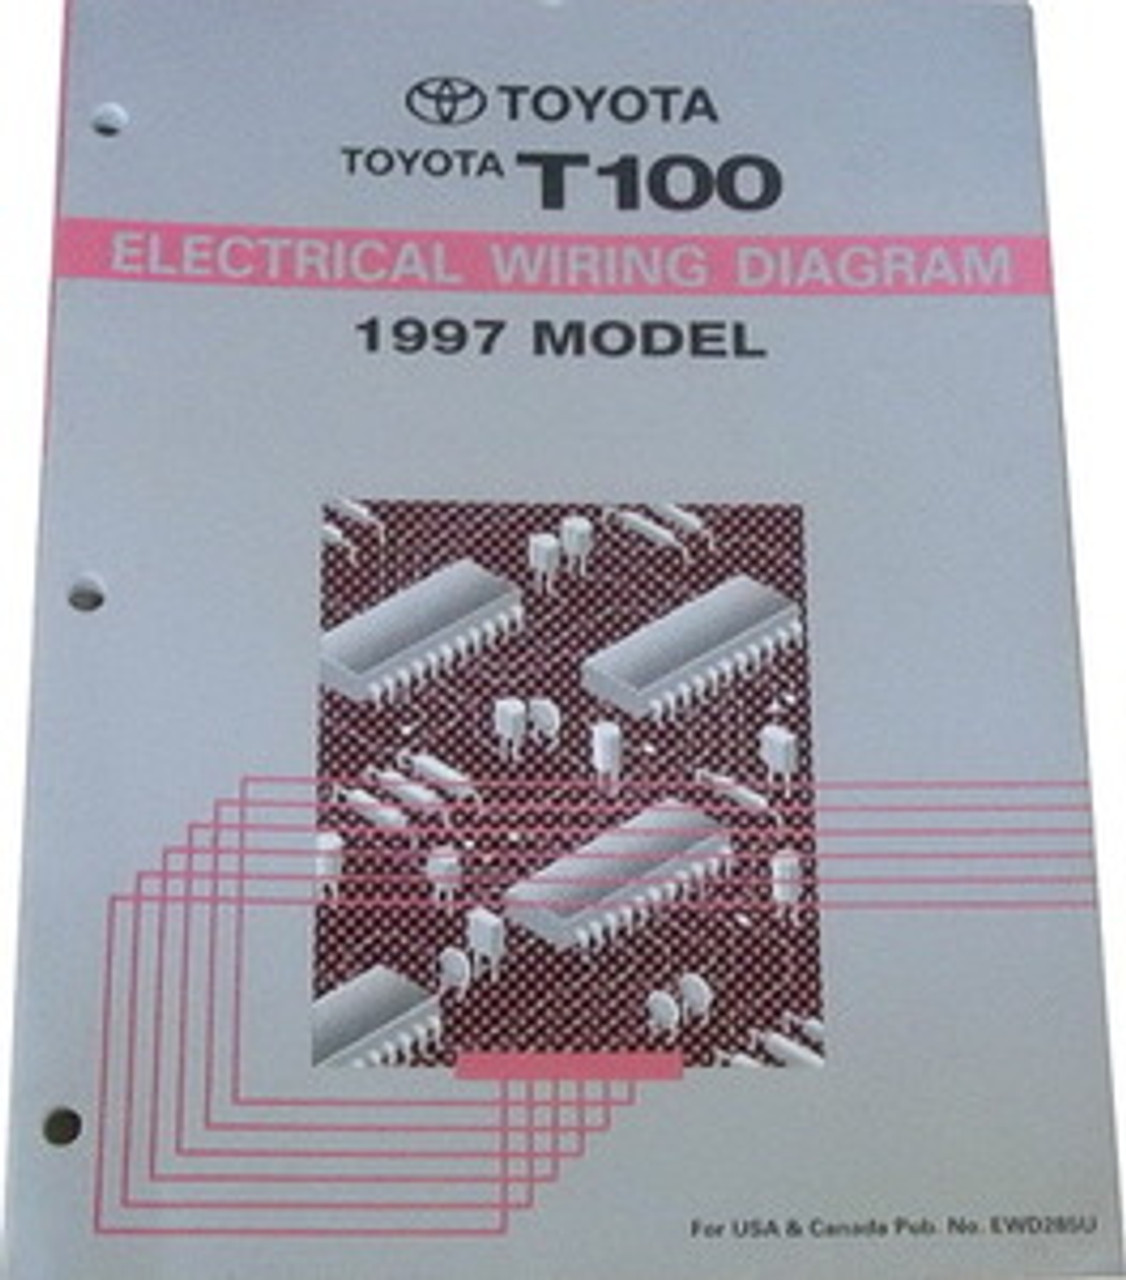 Toyota T100 Wiring Diagram from cdn11.bigcommerce.com